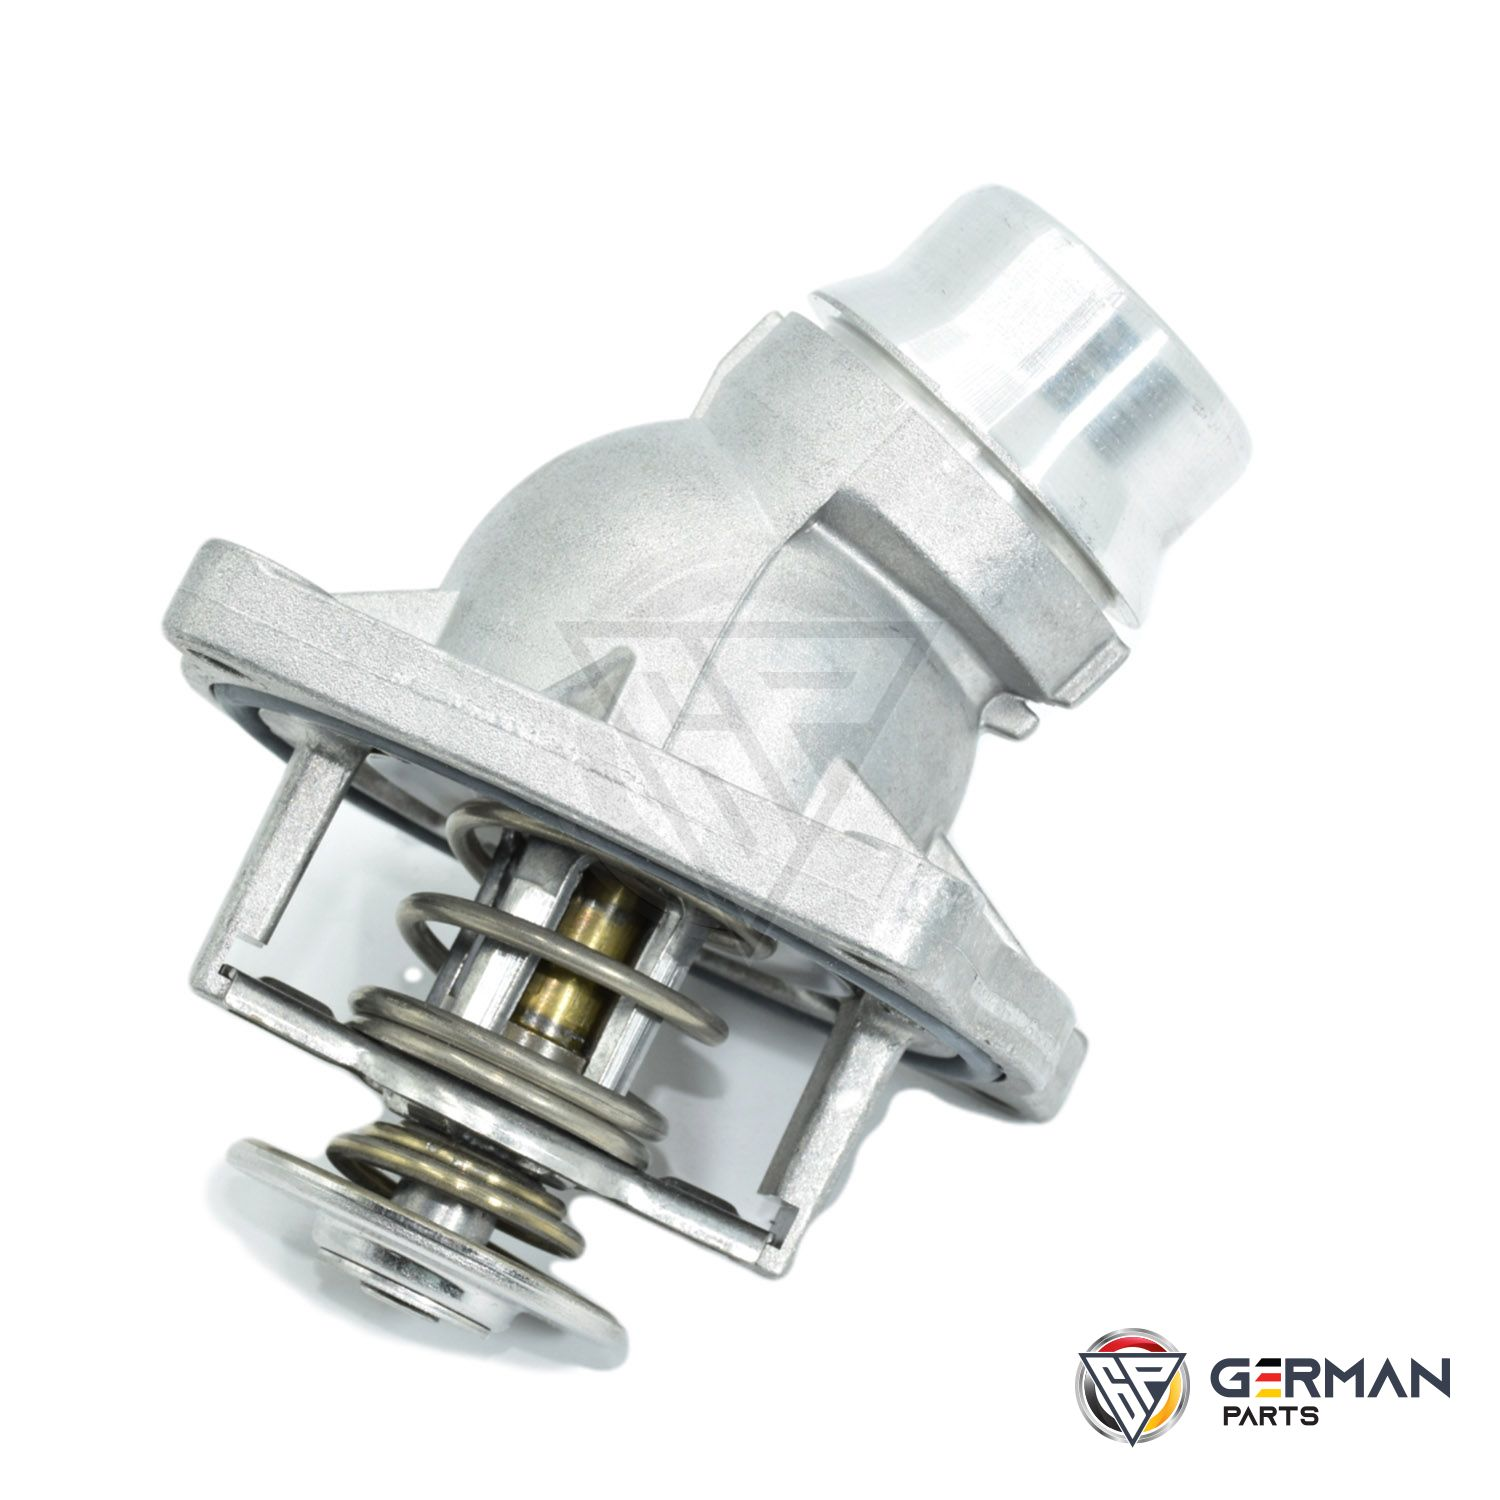 Buy Behr Thermostat Valve 11531436386 - German Parts